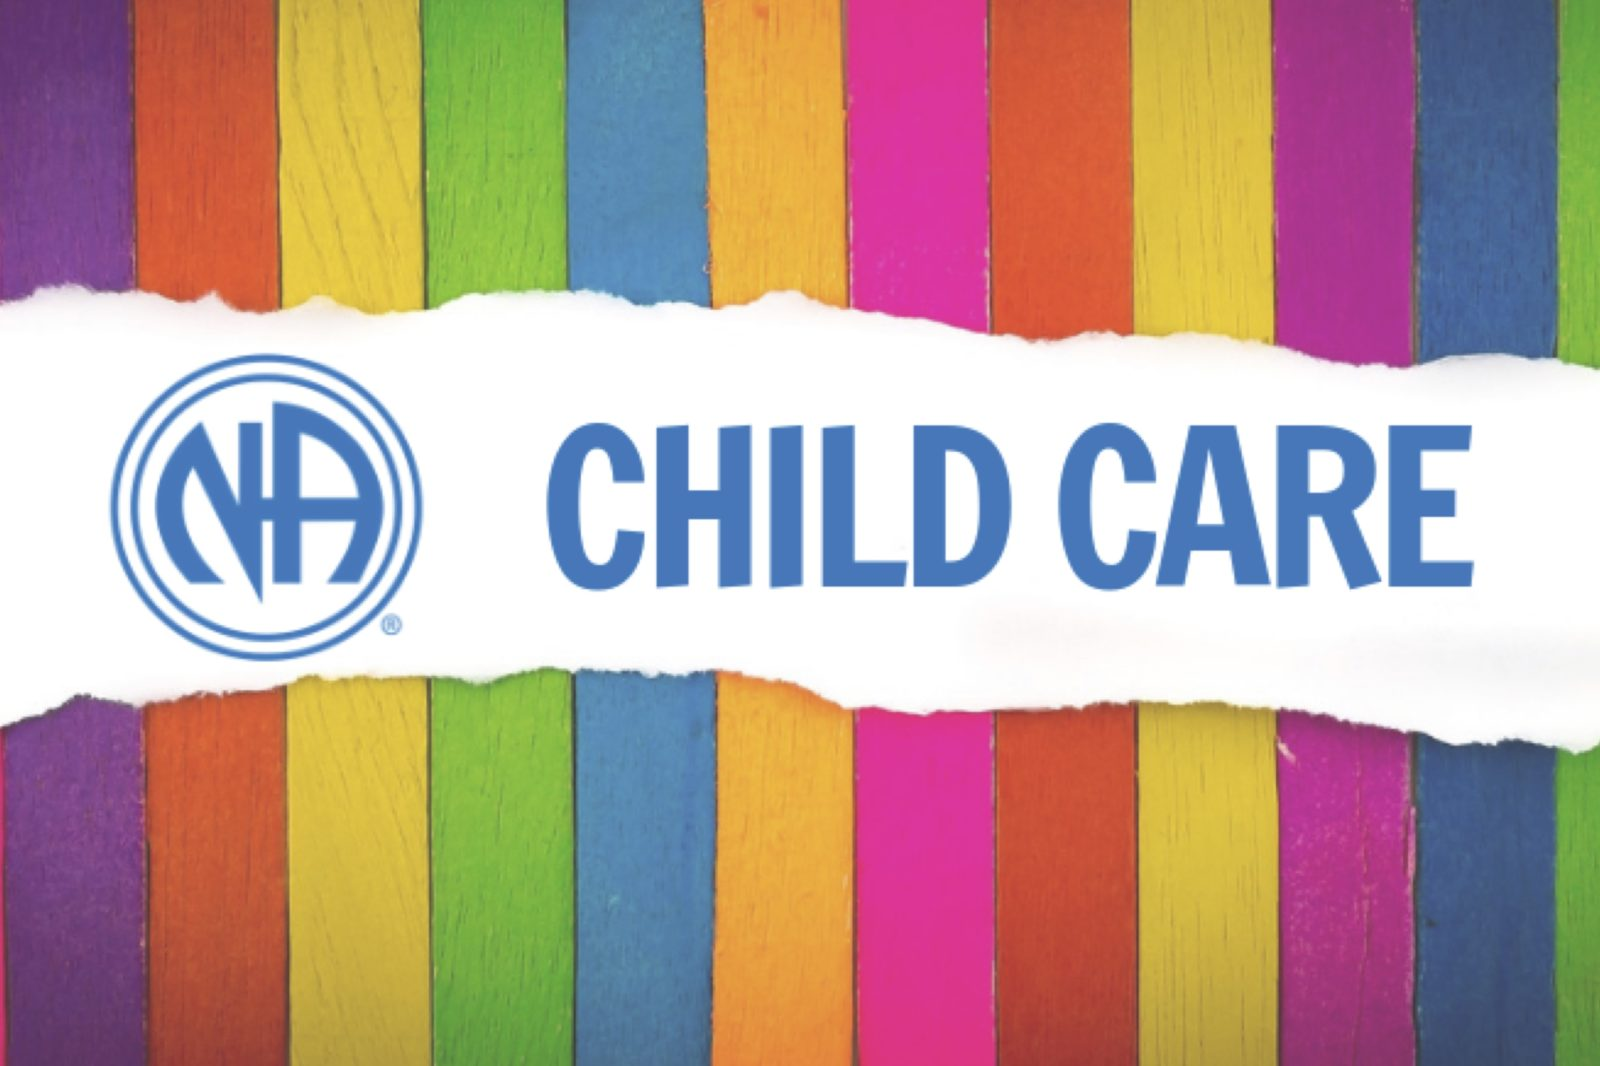 N.A. CHILDCARE